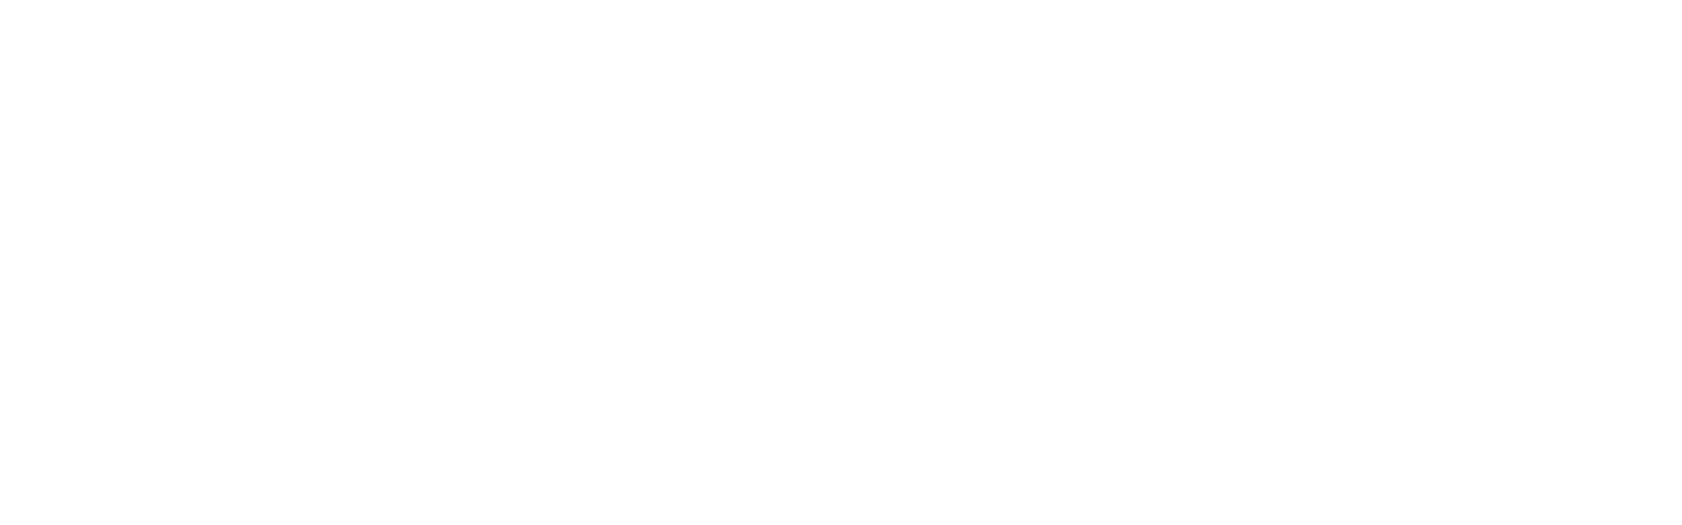 Fusion Industries | Metal Fabricating